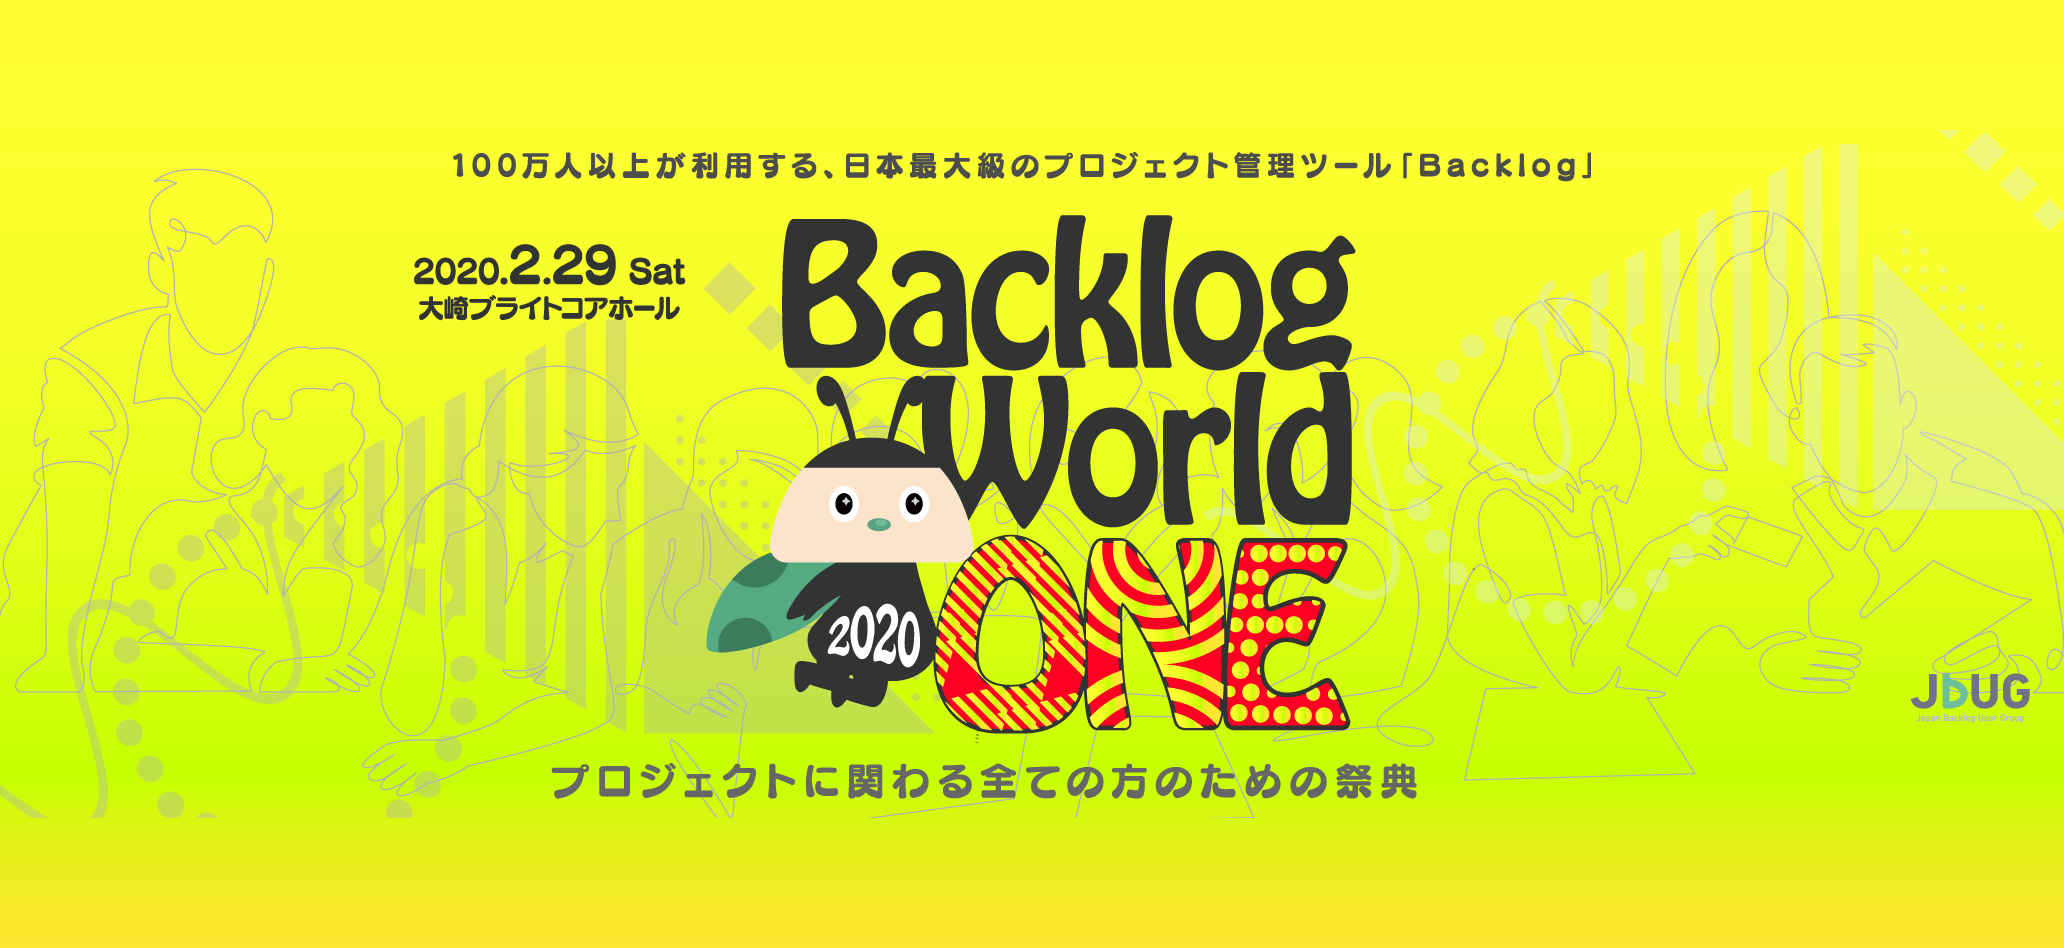 Backlog World 2020